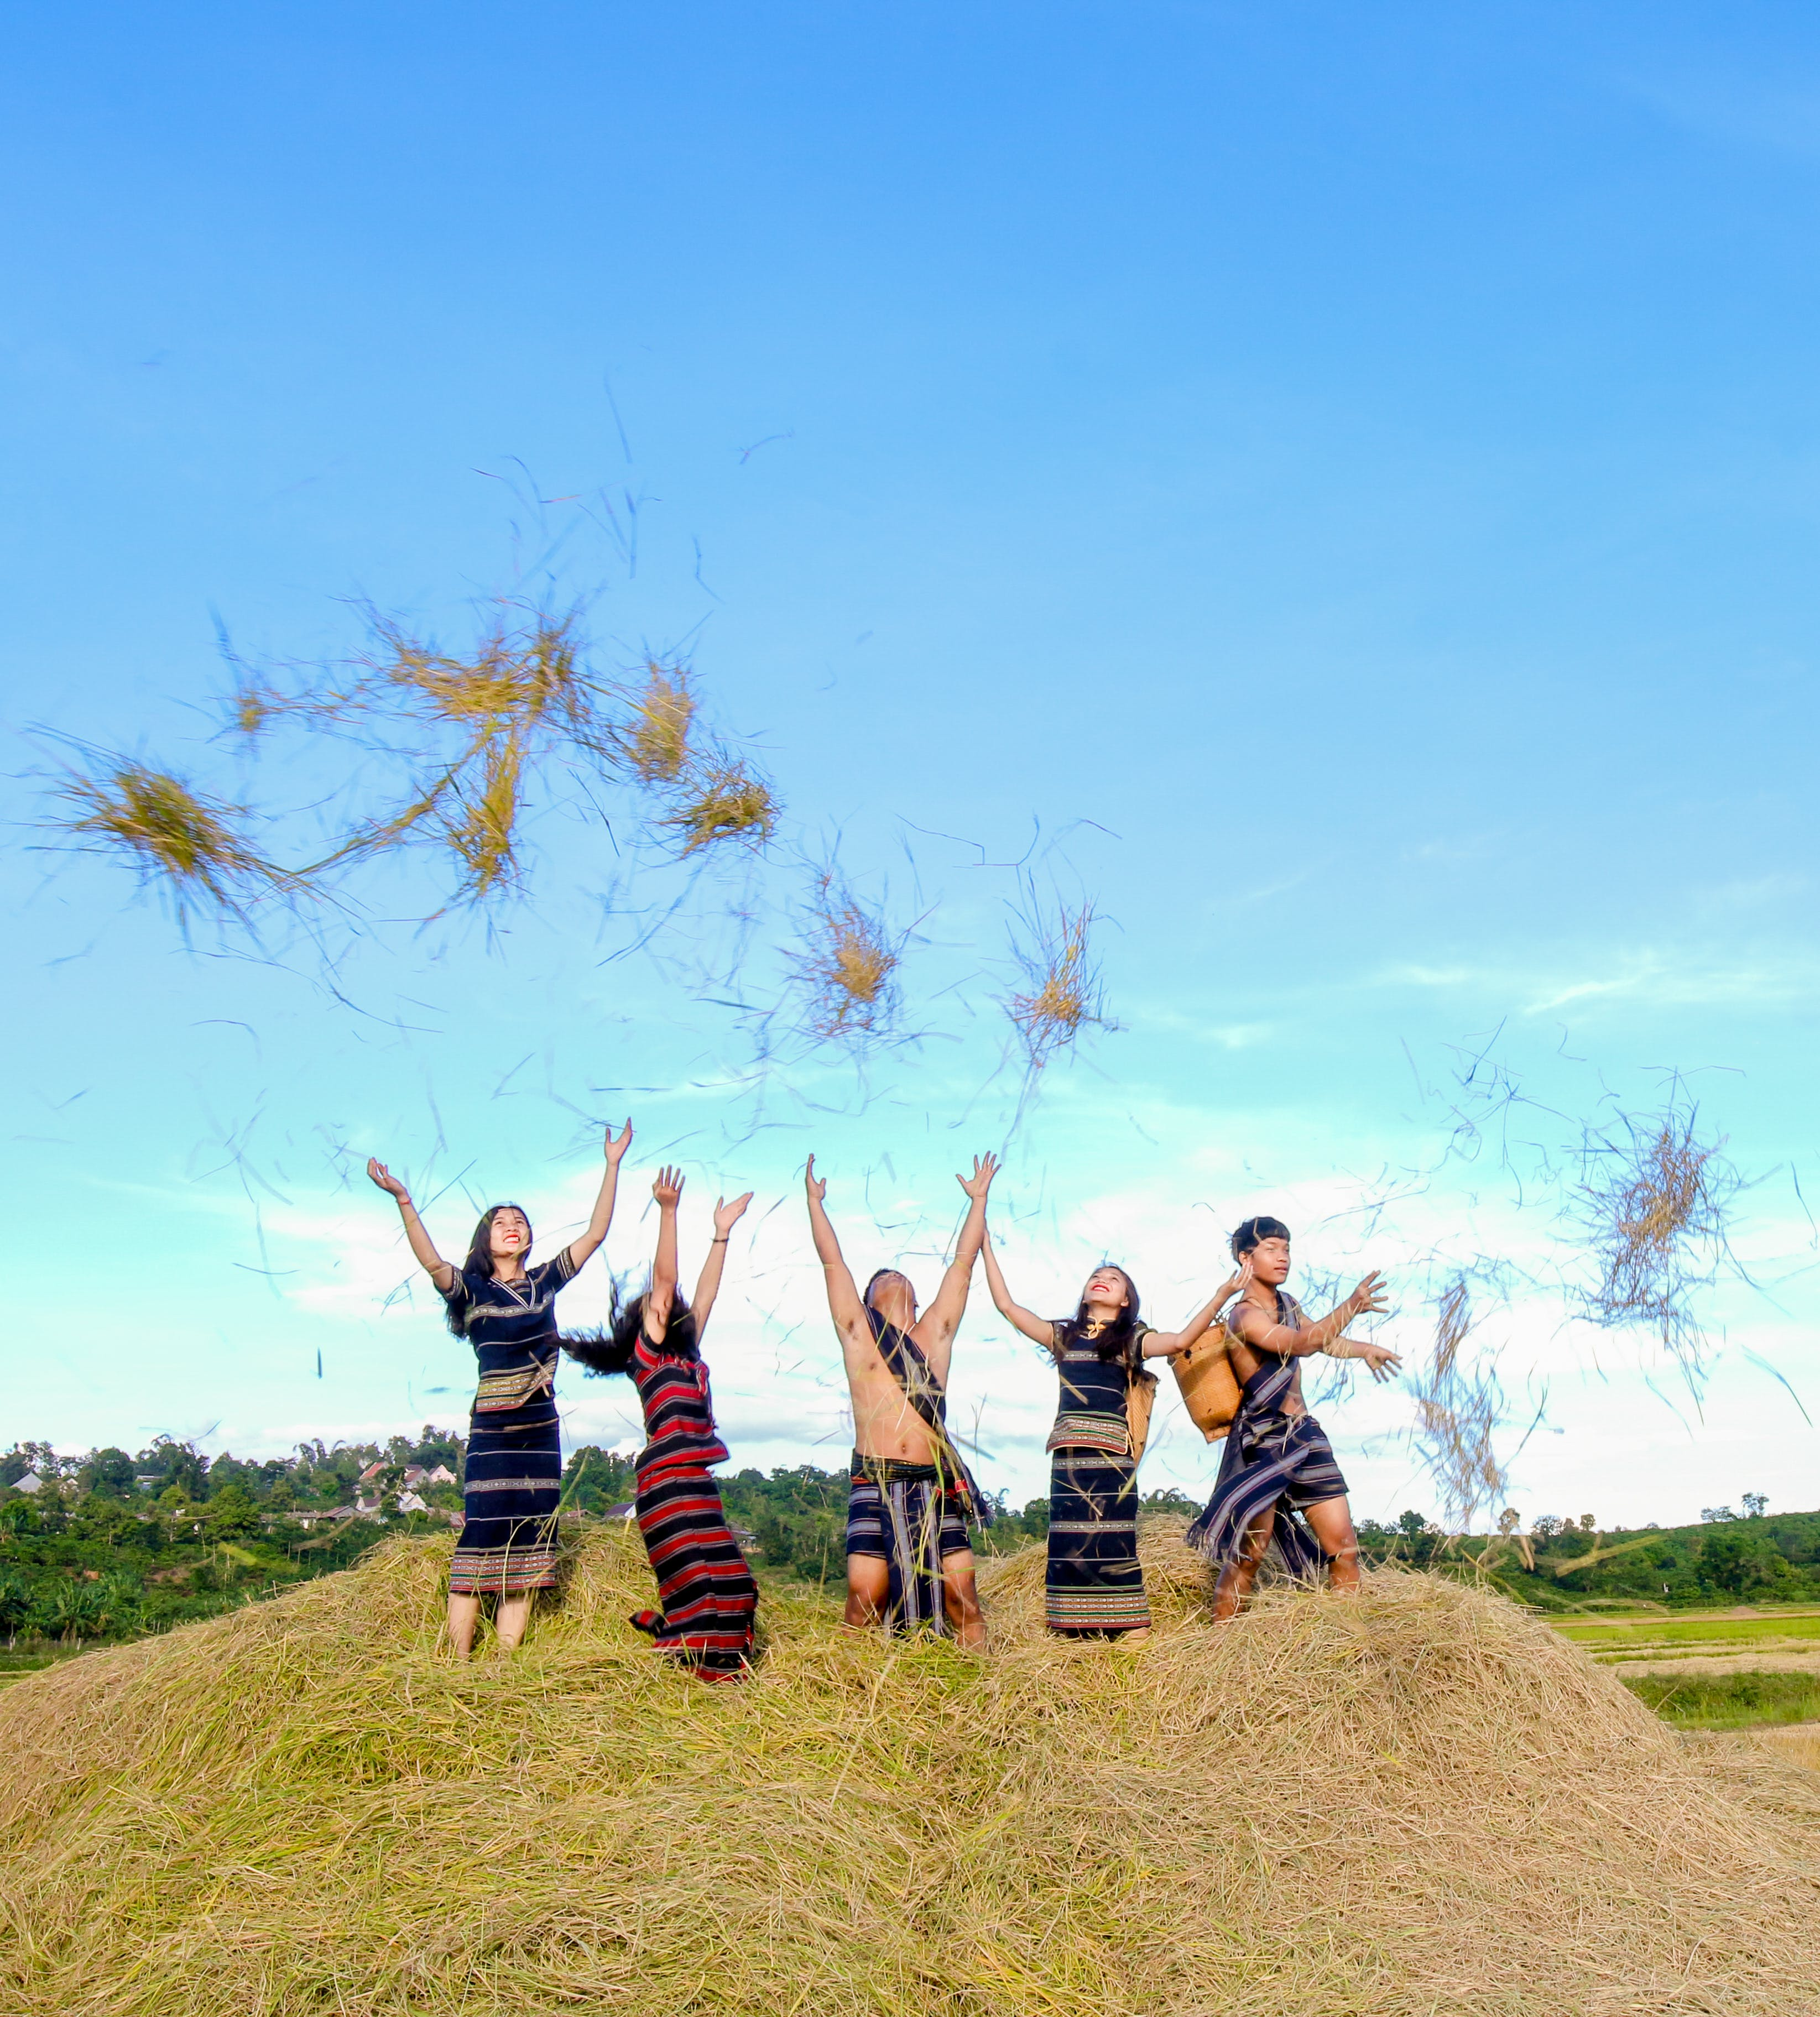 Four People Standing on Hay While Throwing Up